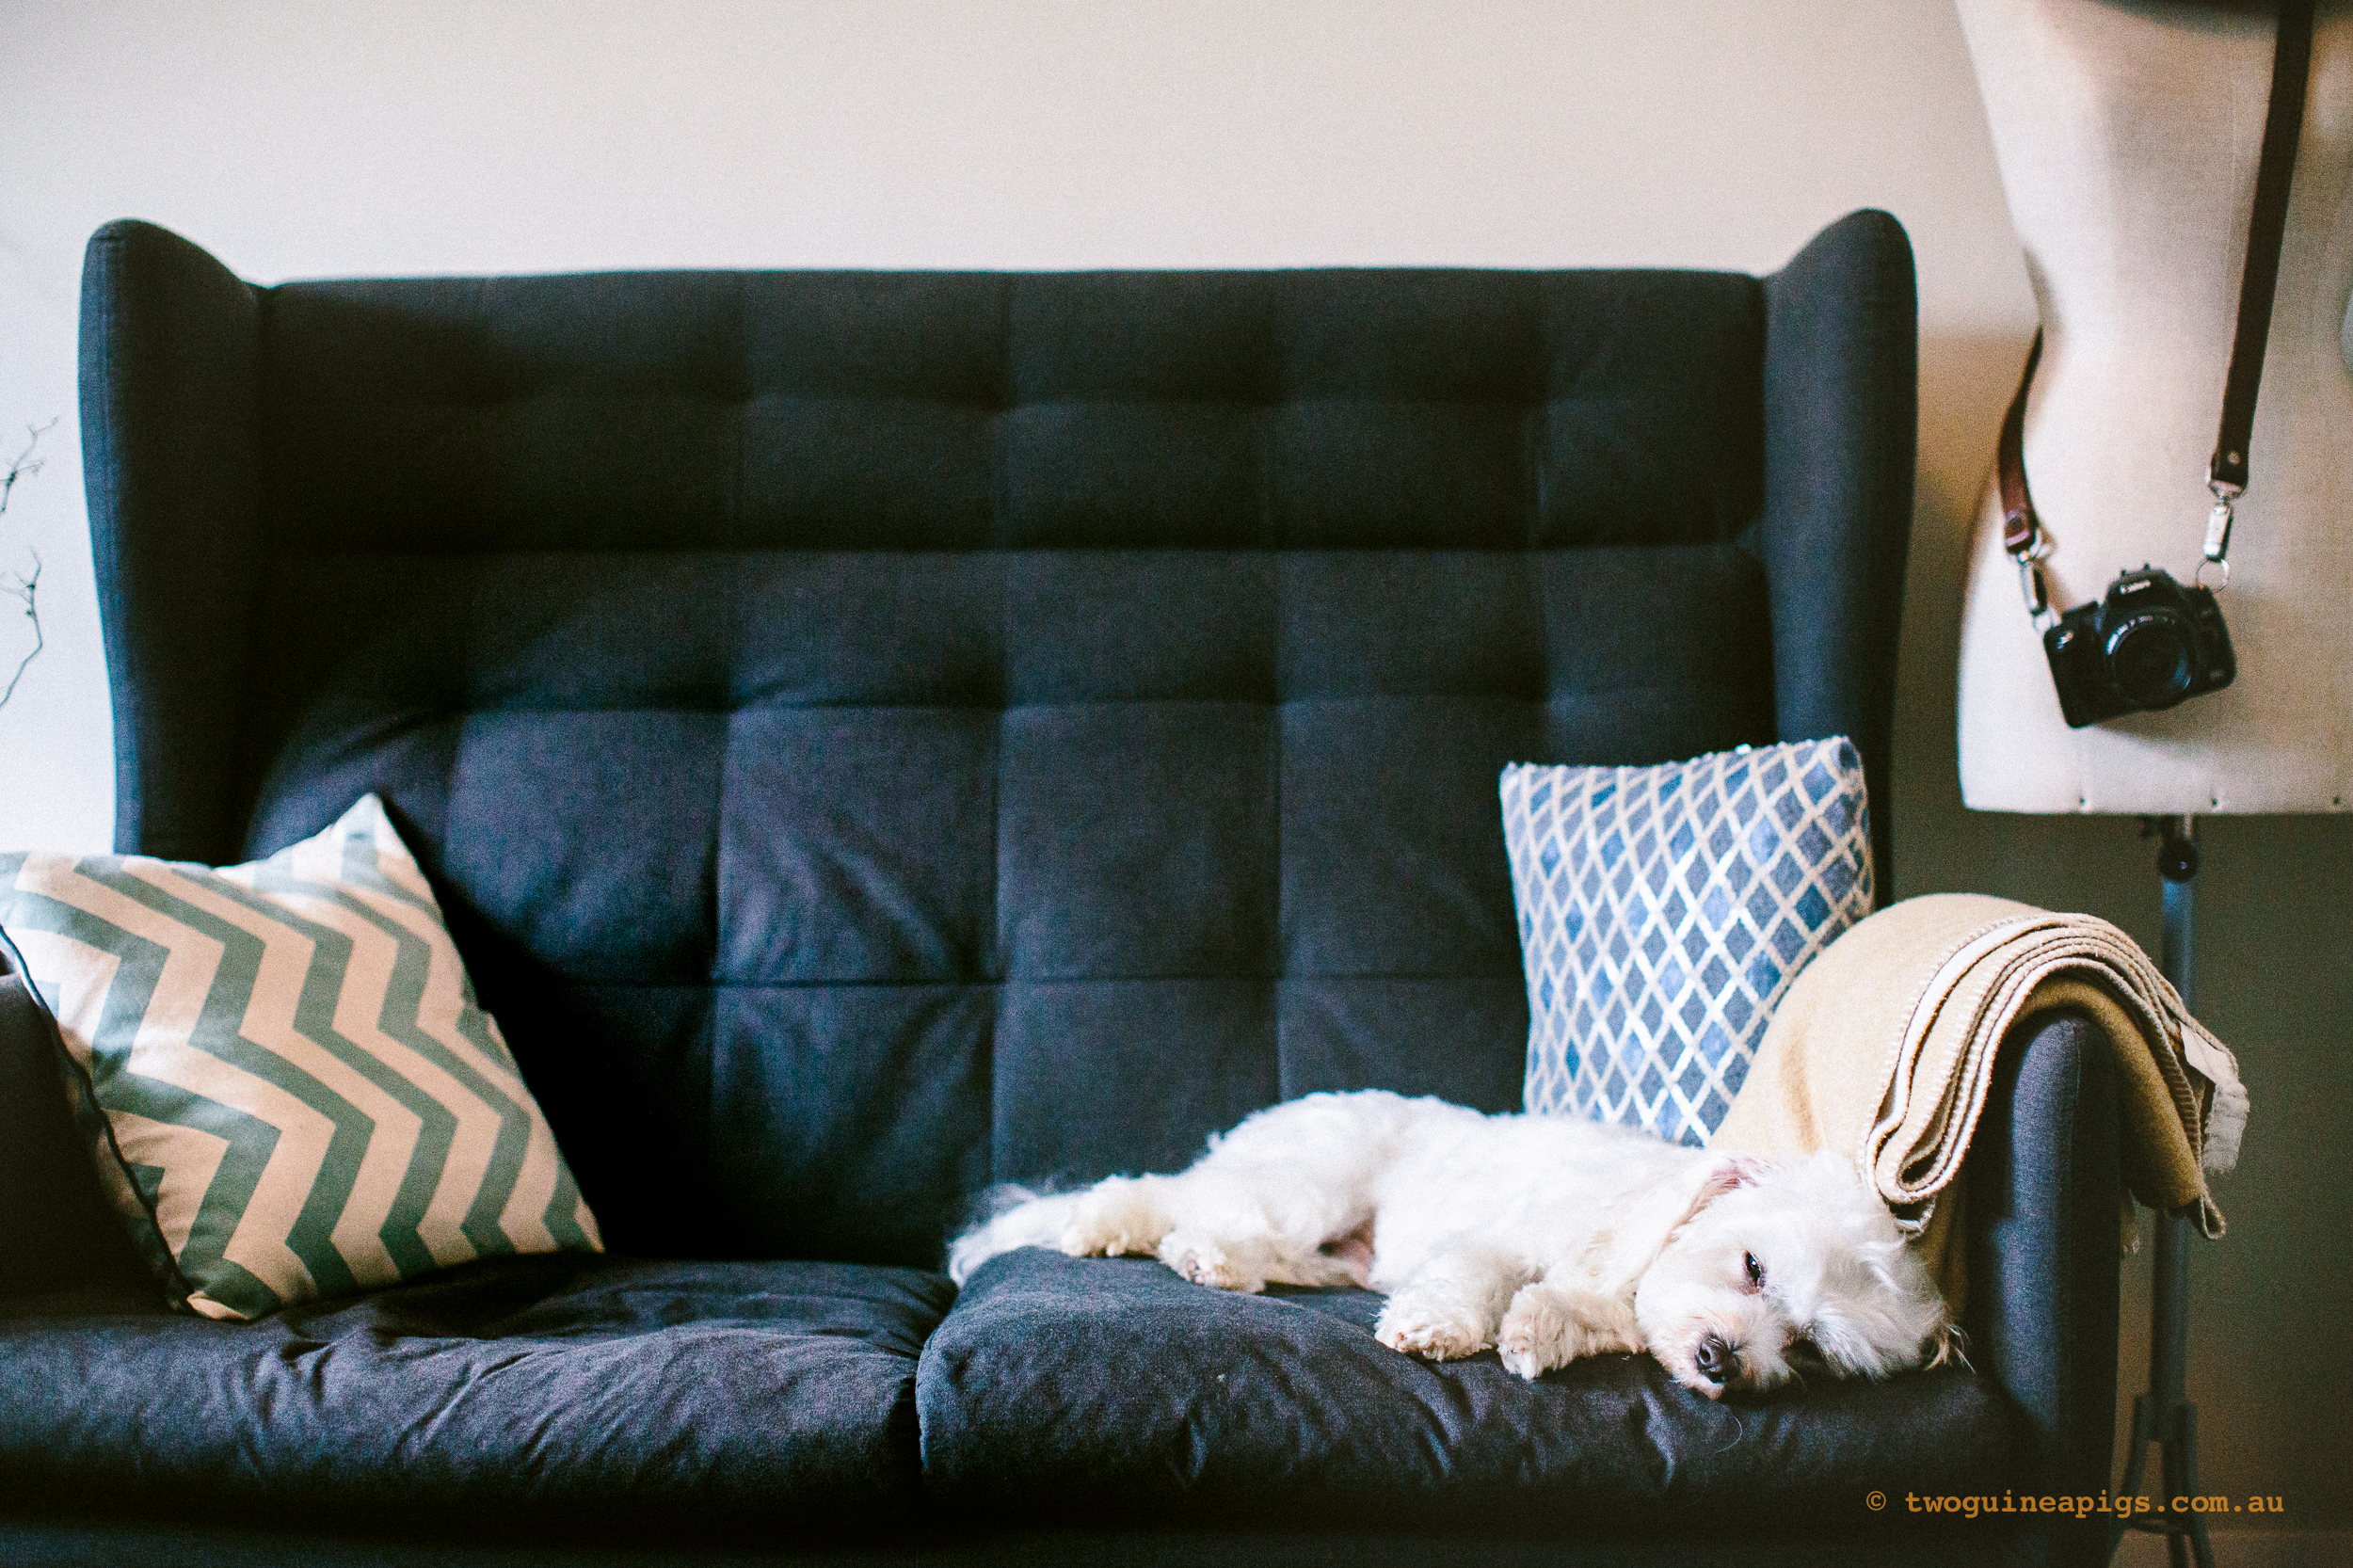 twoguineapigs_pet_photography_dalston_havanese_holiday_day2_dog